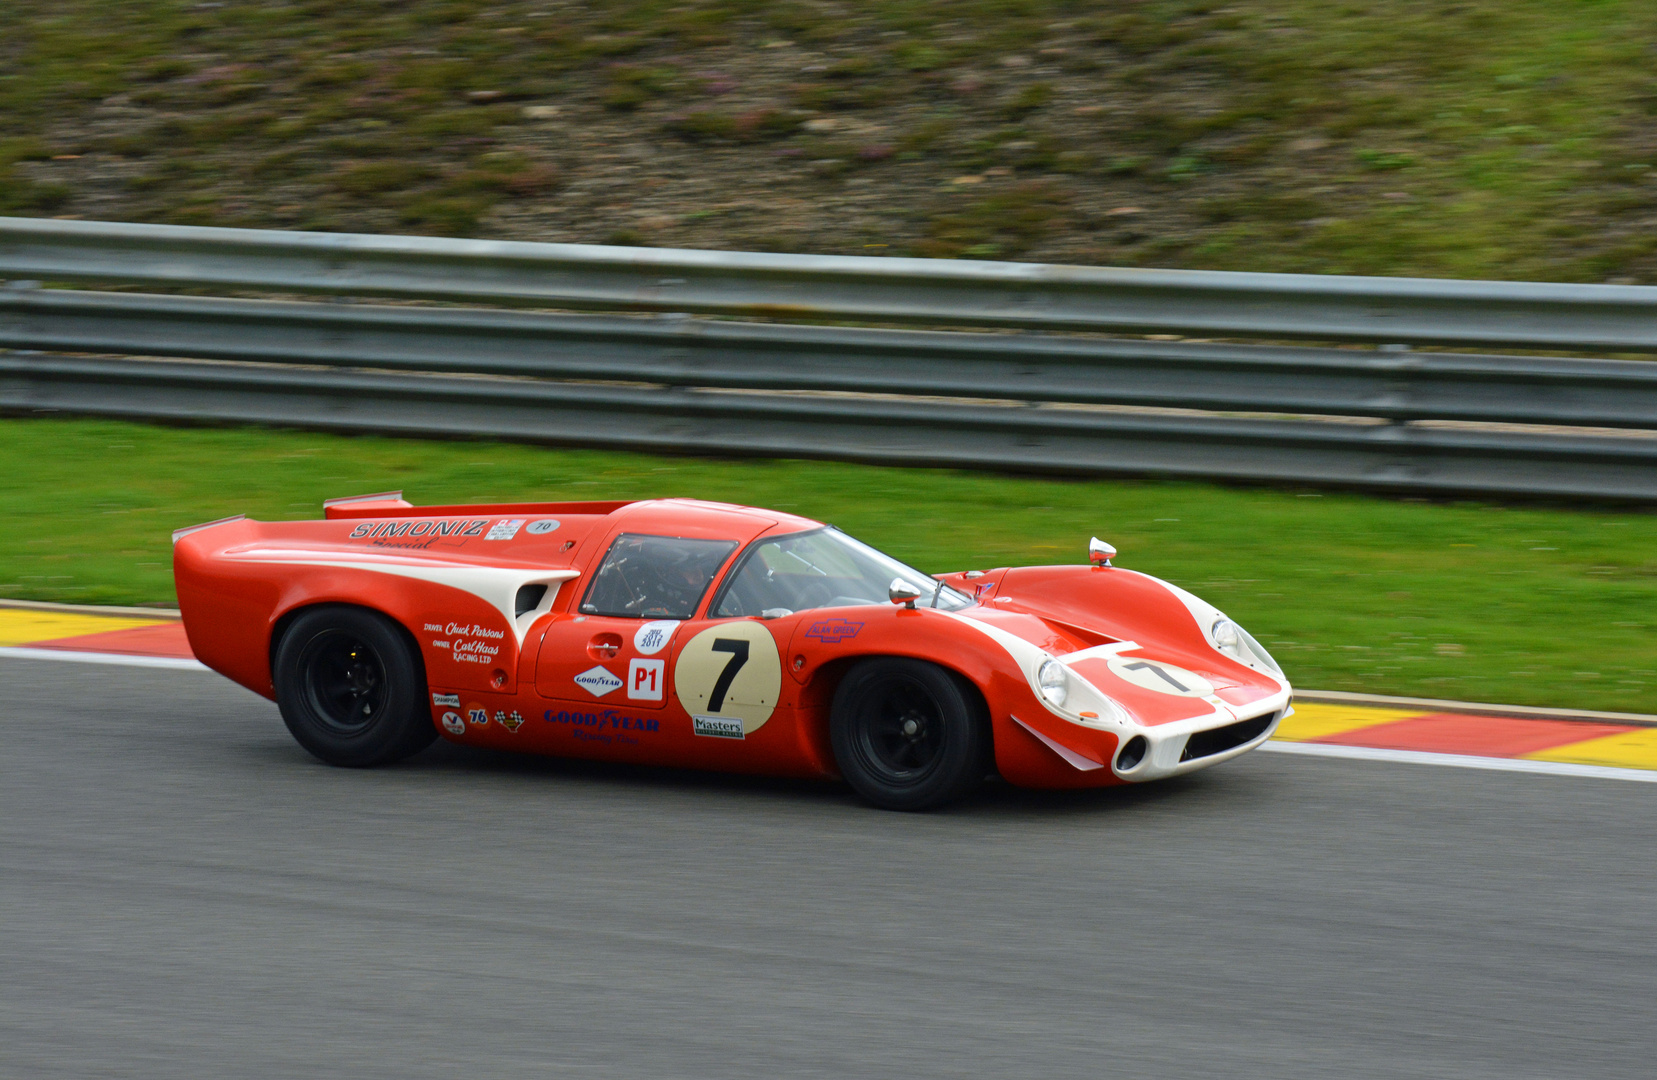 Circuit Spa-Francorchamps September 2013